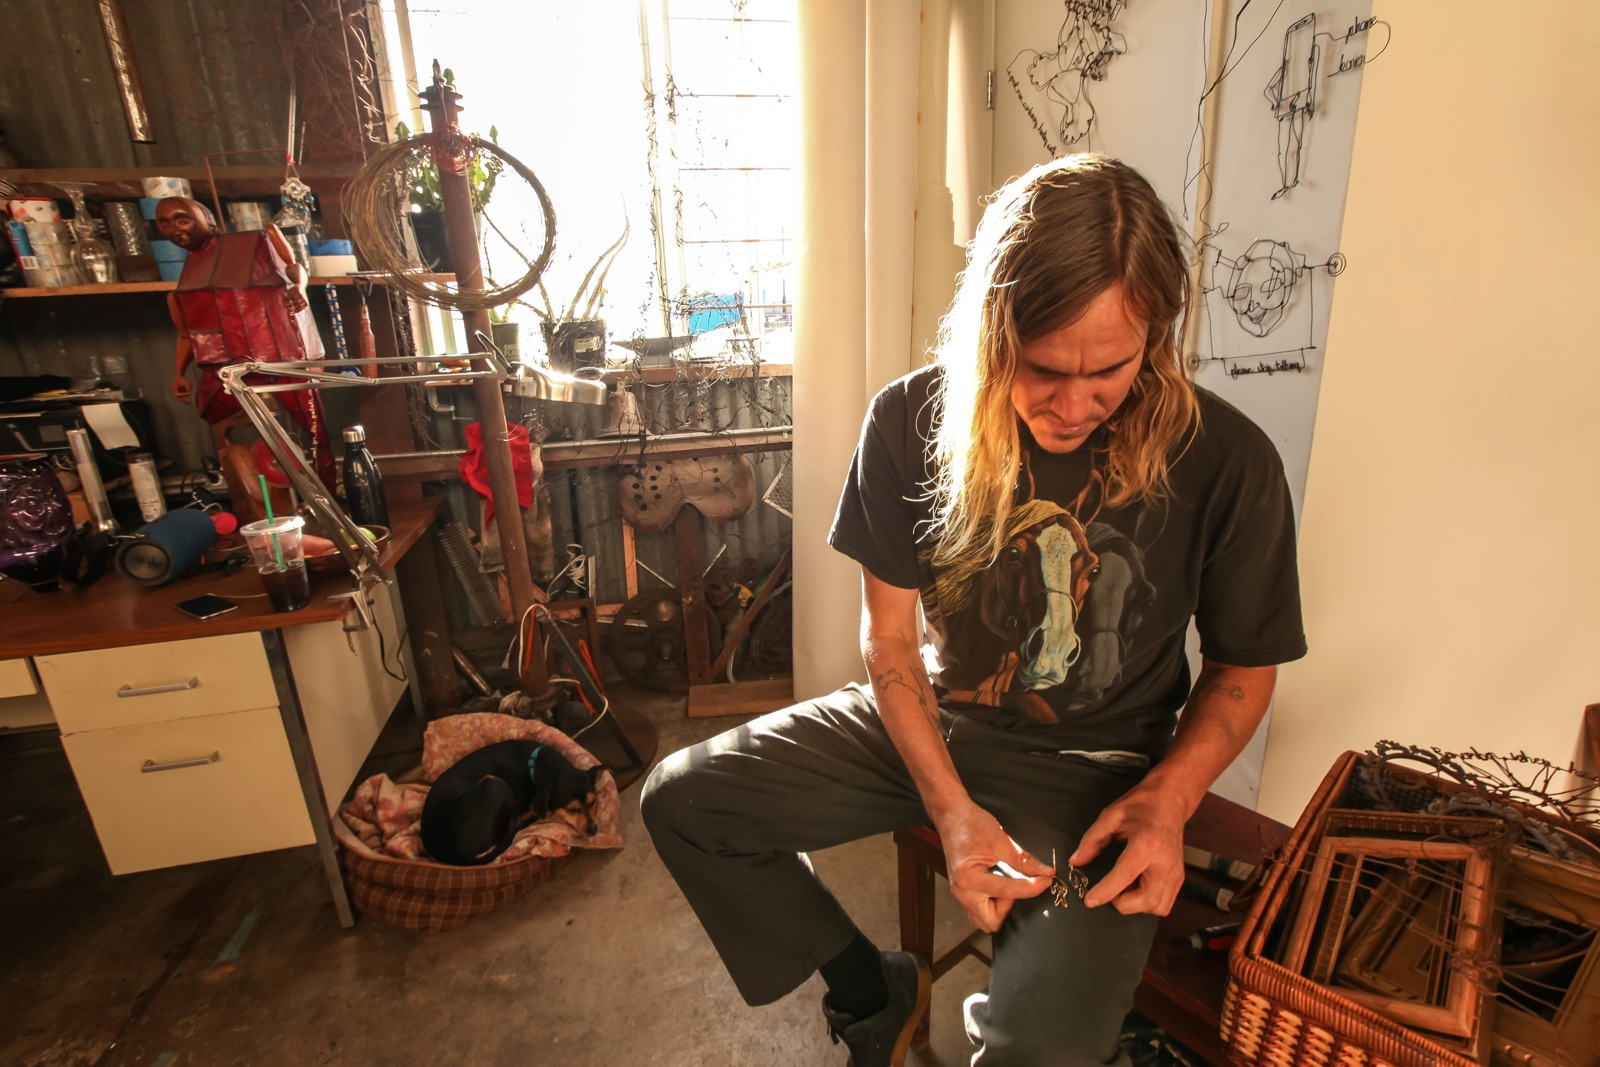 Image: 111minnagallery.com (The Artist in his Glashaus studio)